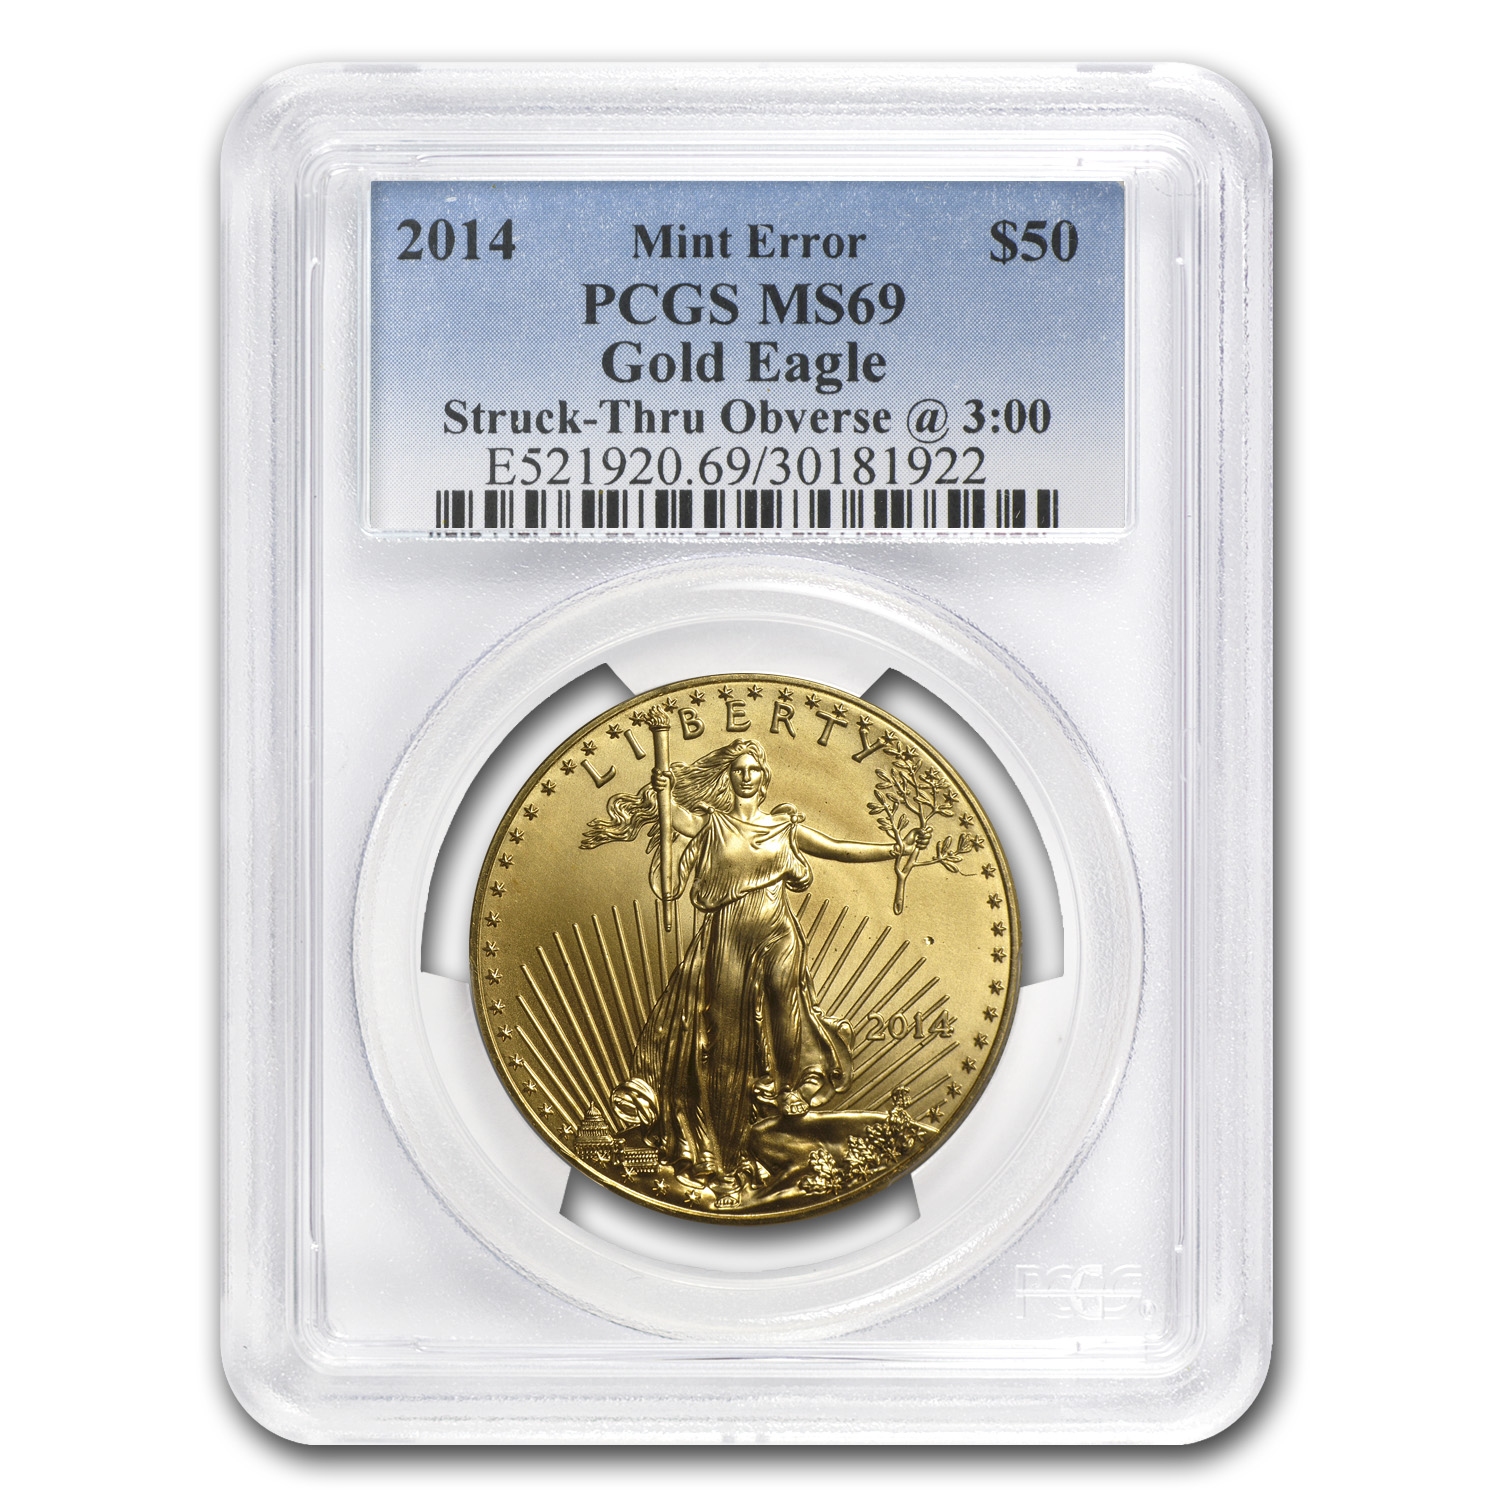 "2014 1 oz Gold Eagle Mint Error PCGS MS-69 ""Obv Struck Thru"""